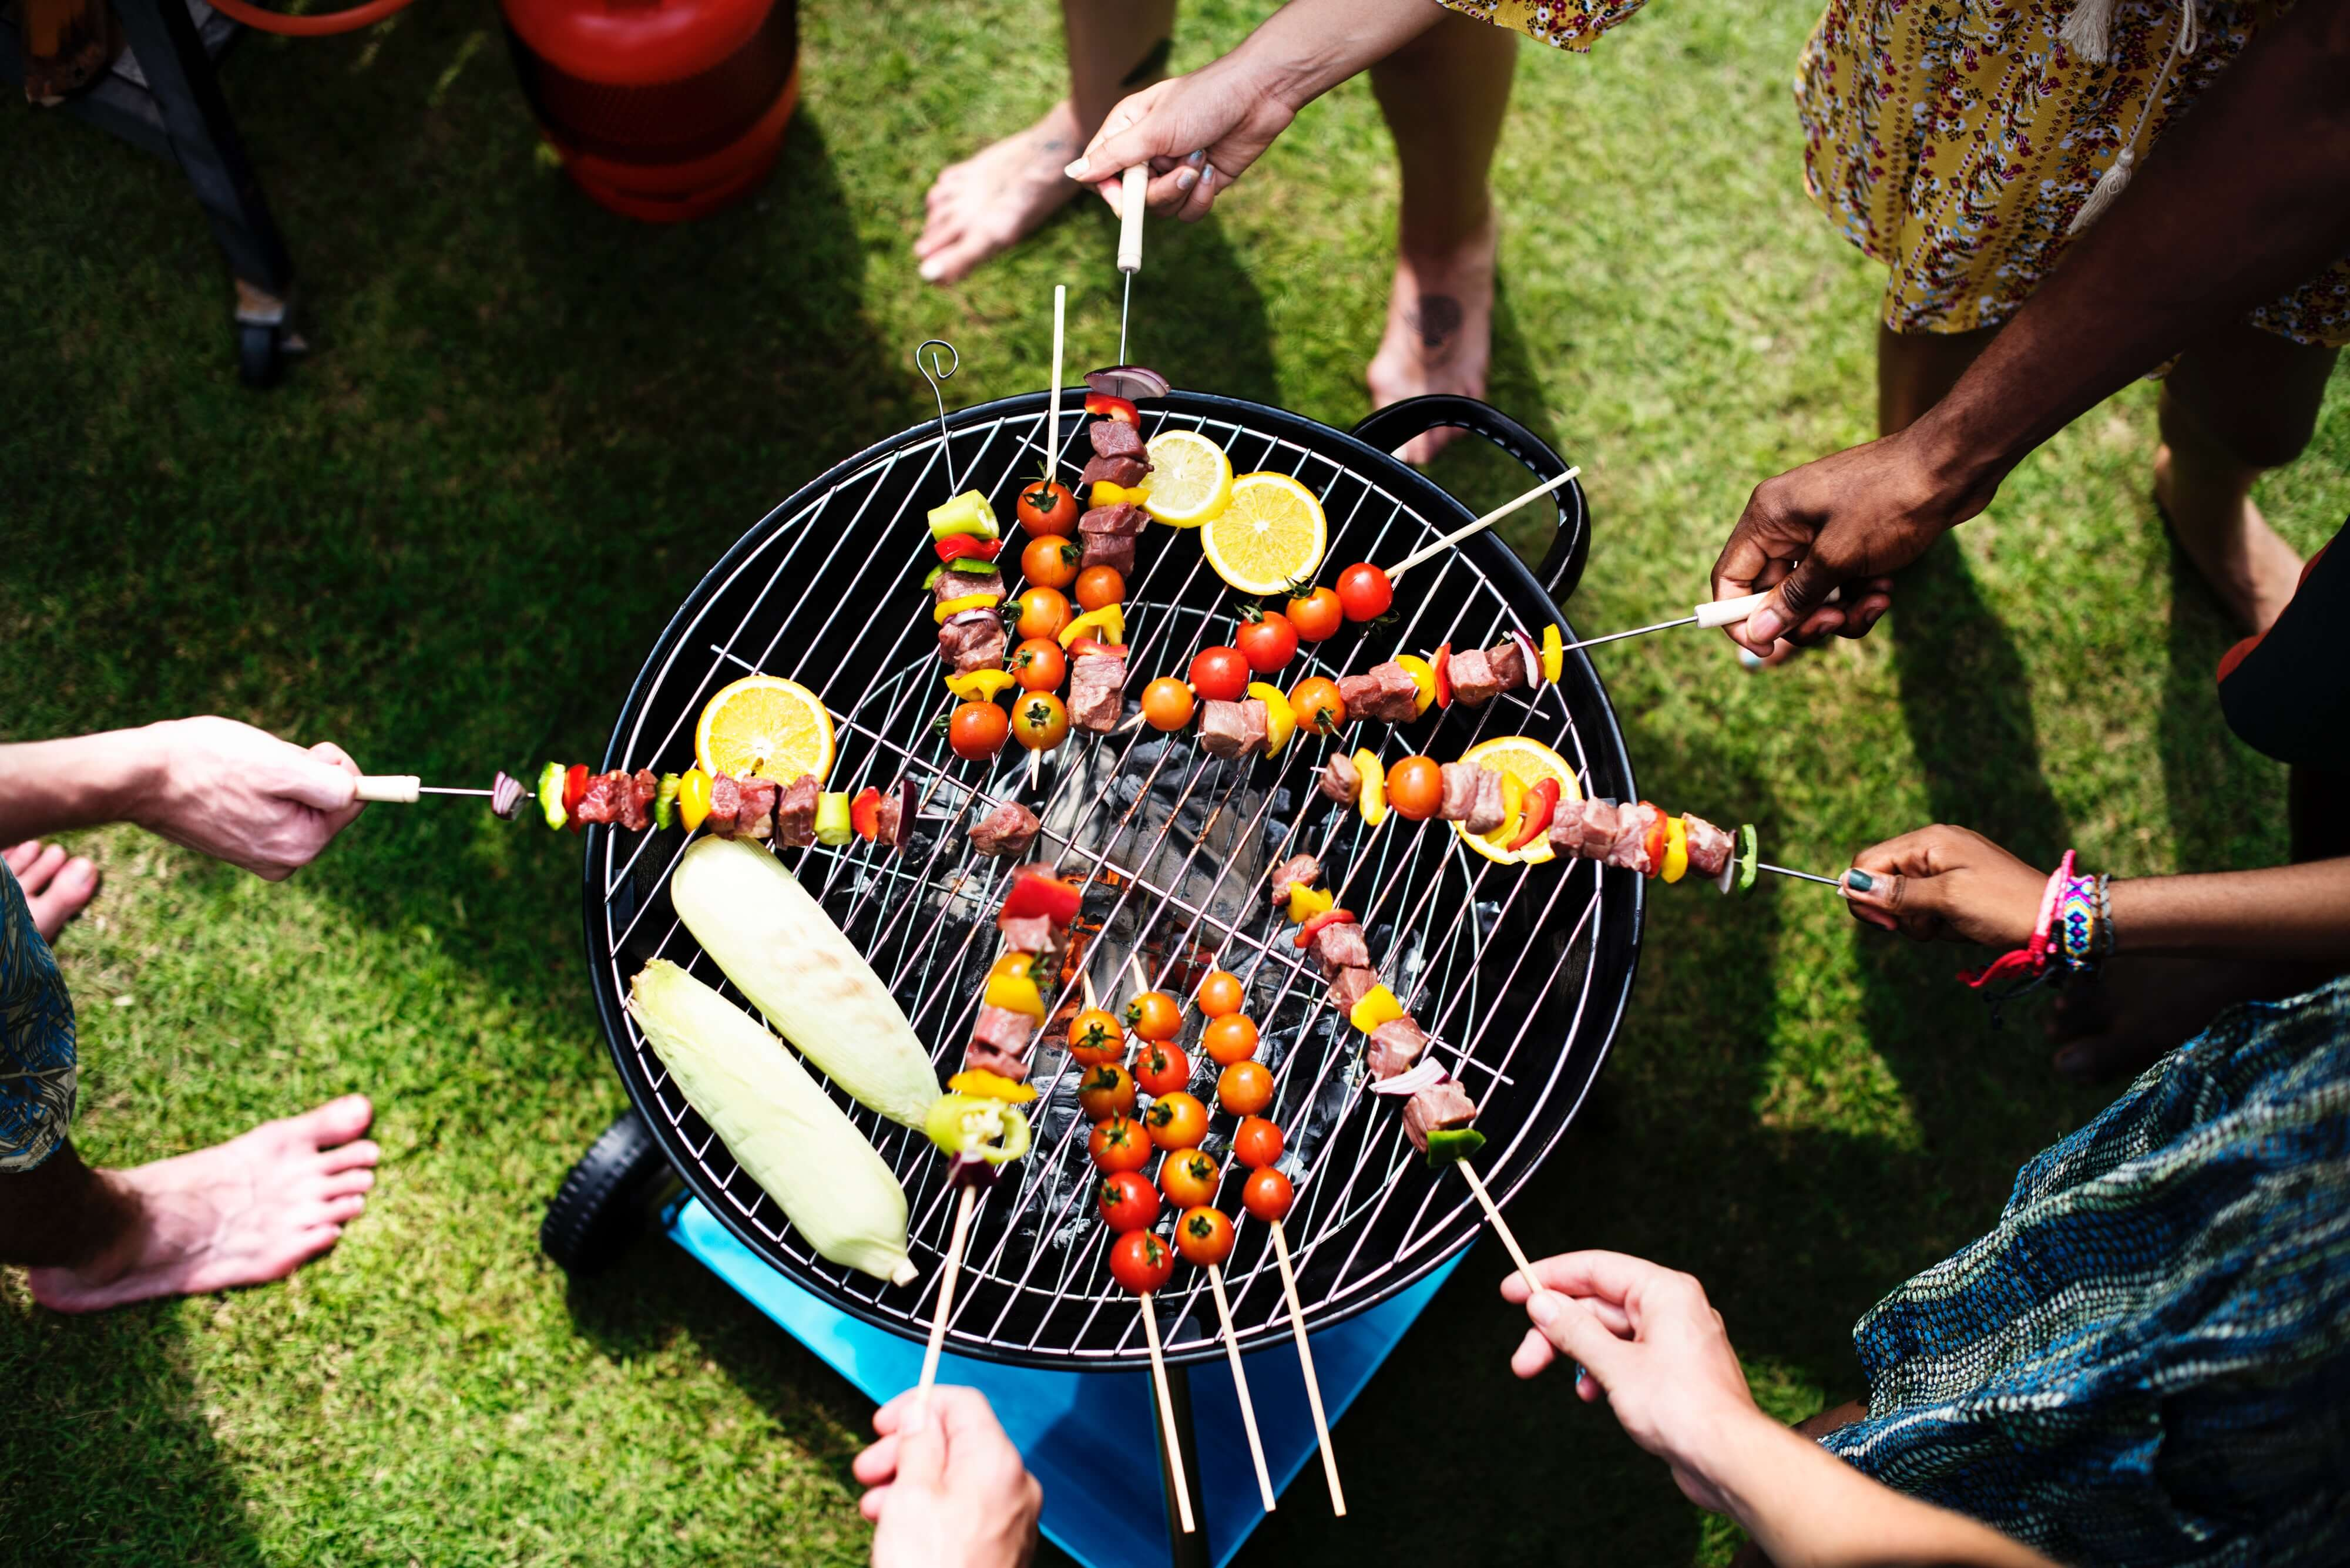 barbecue, activities for last days of summer